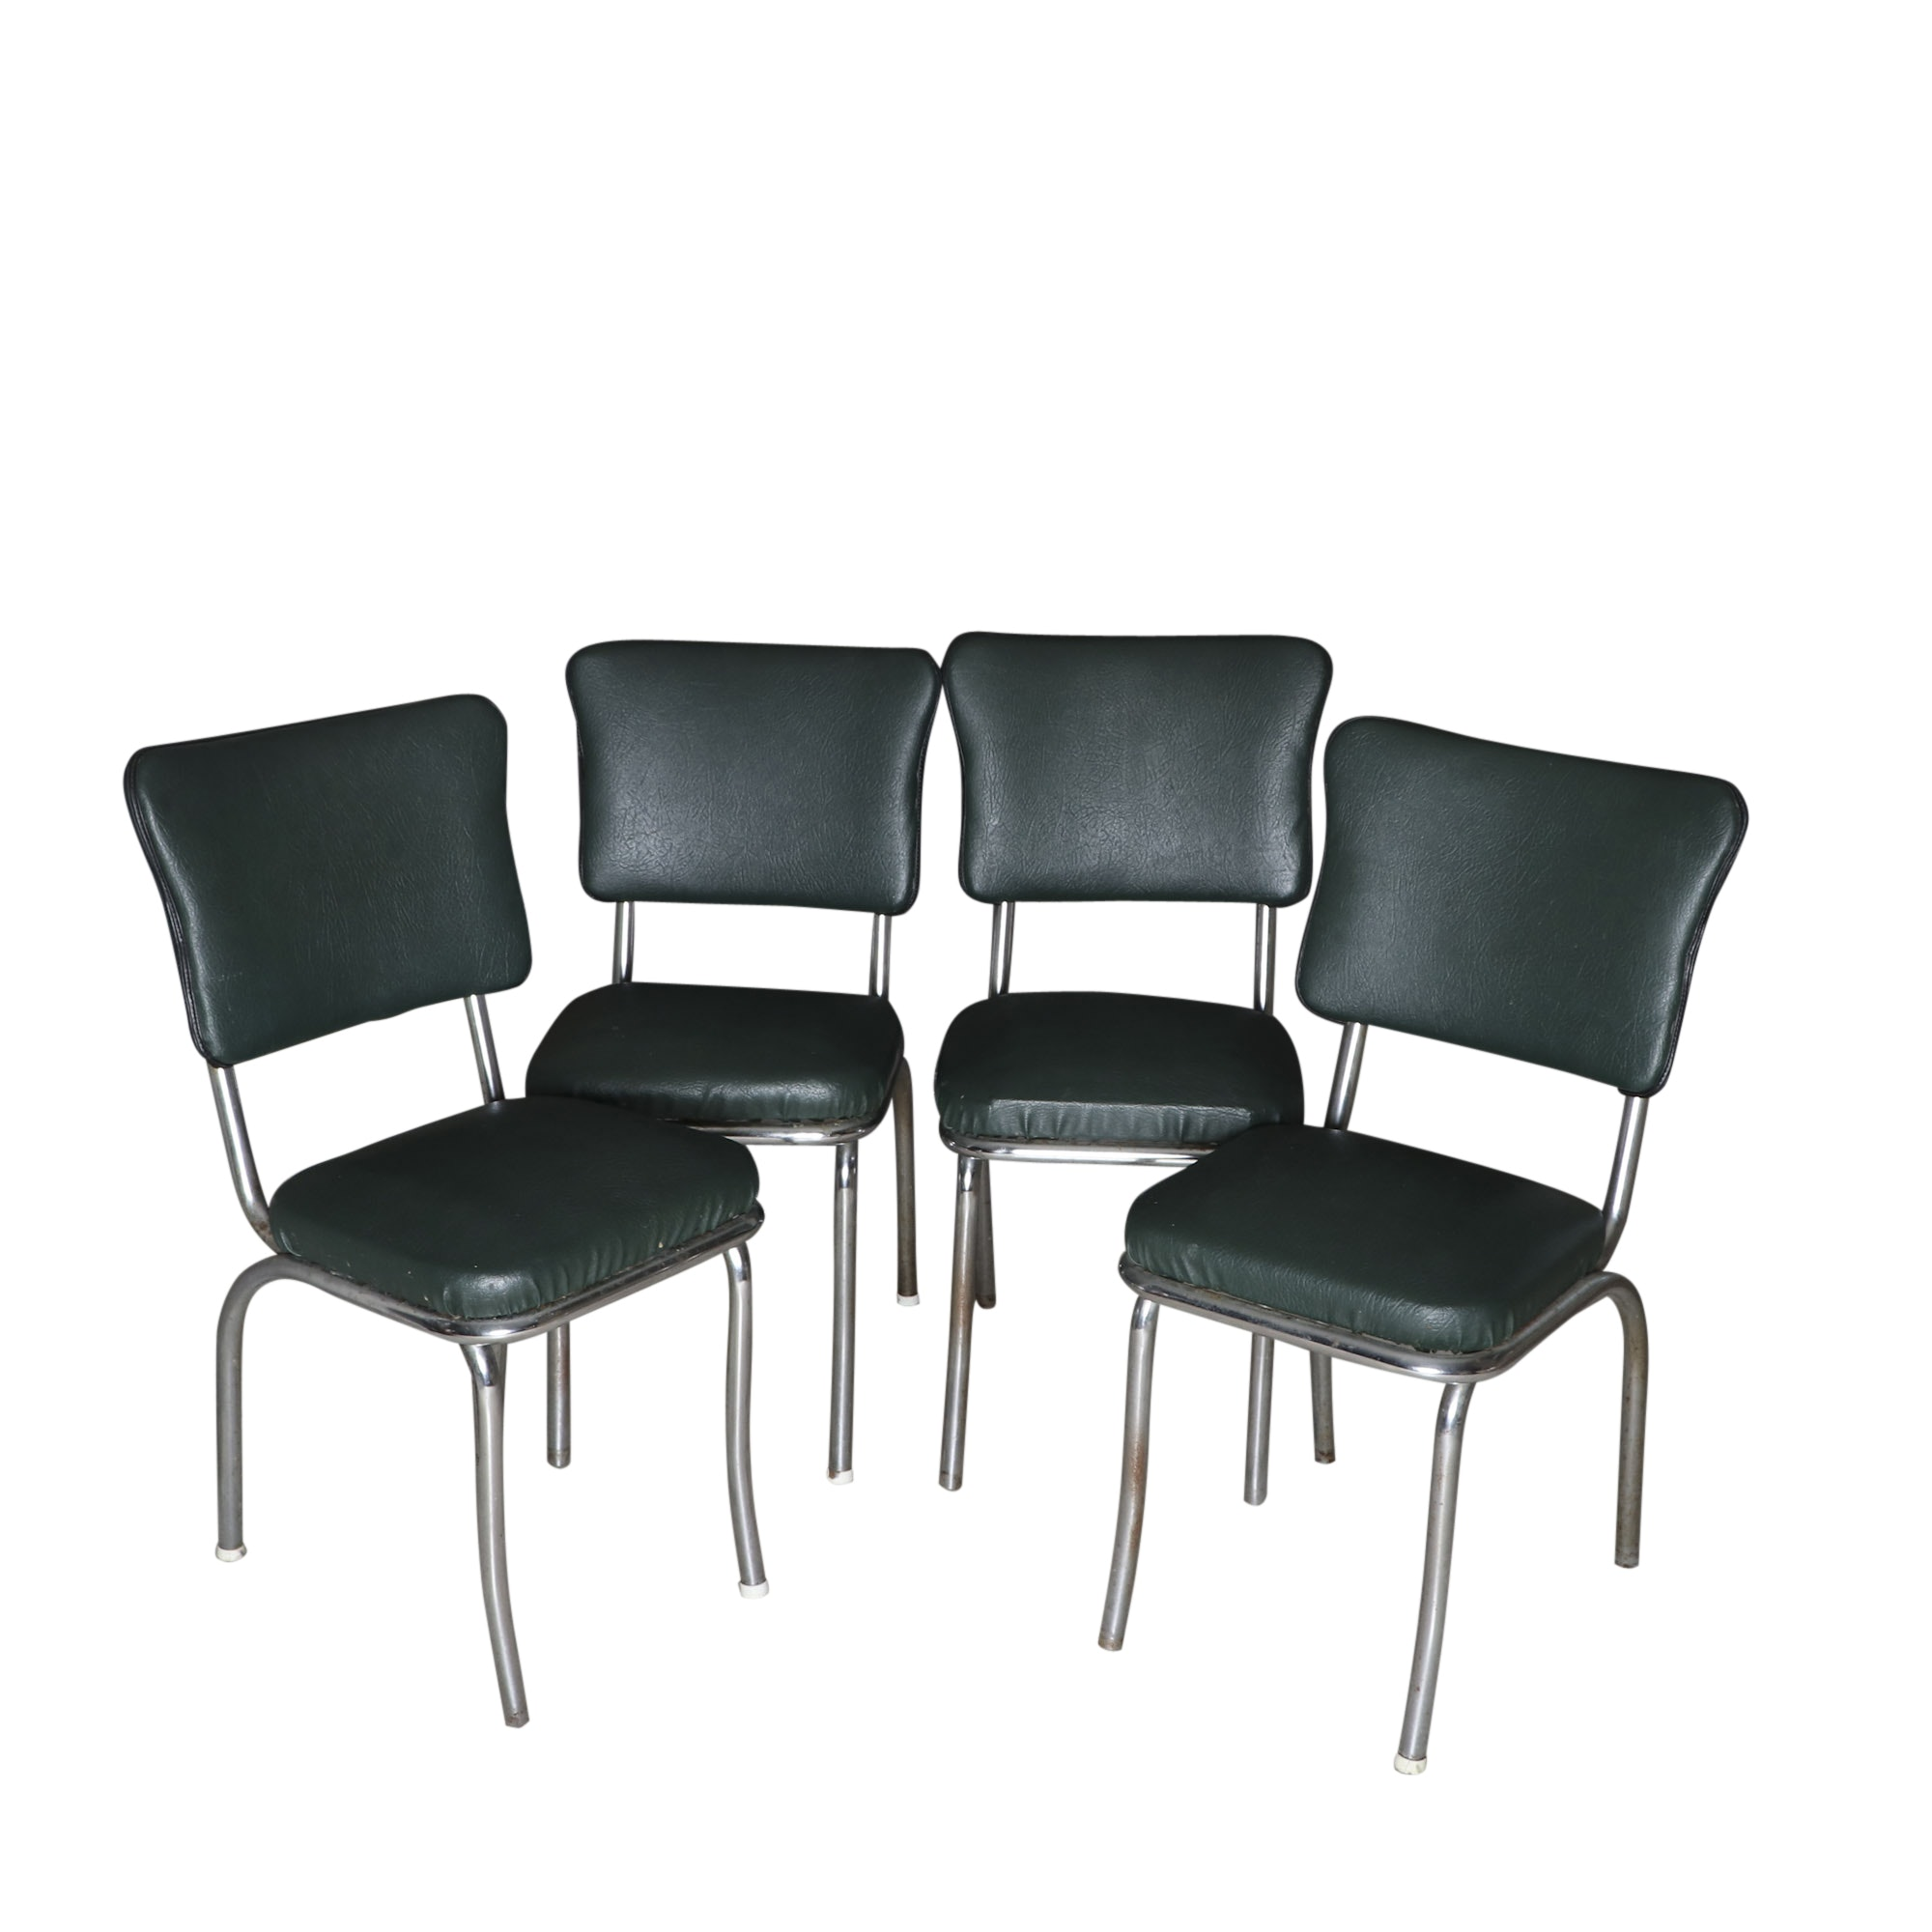 Four 1950s Chrome and Vinyl Chairs